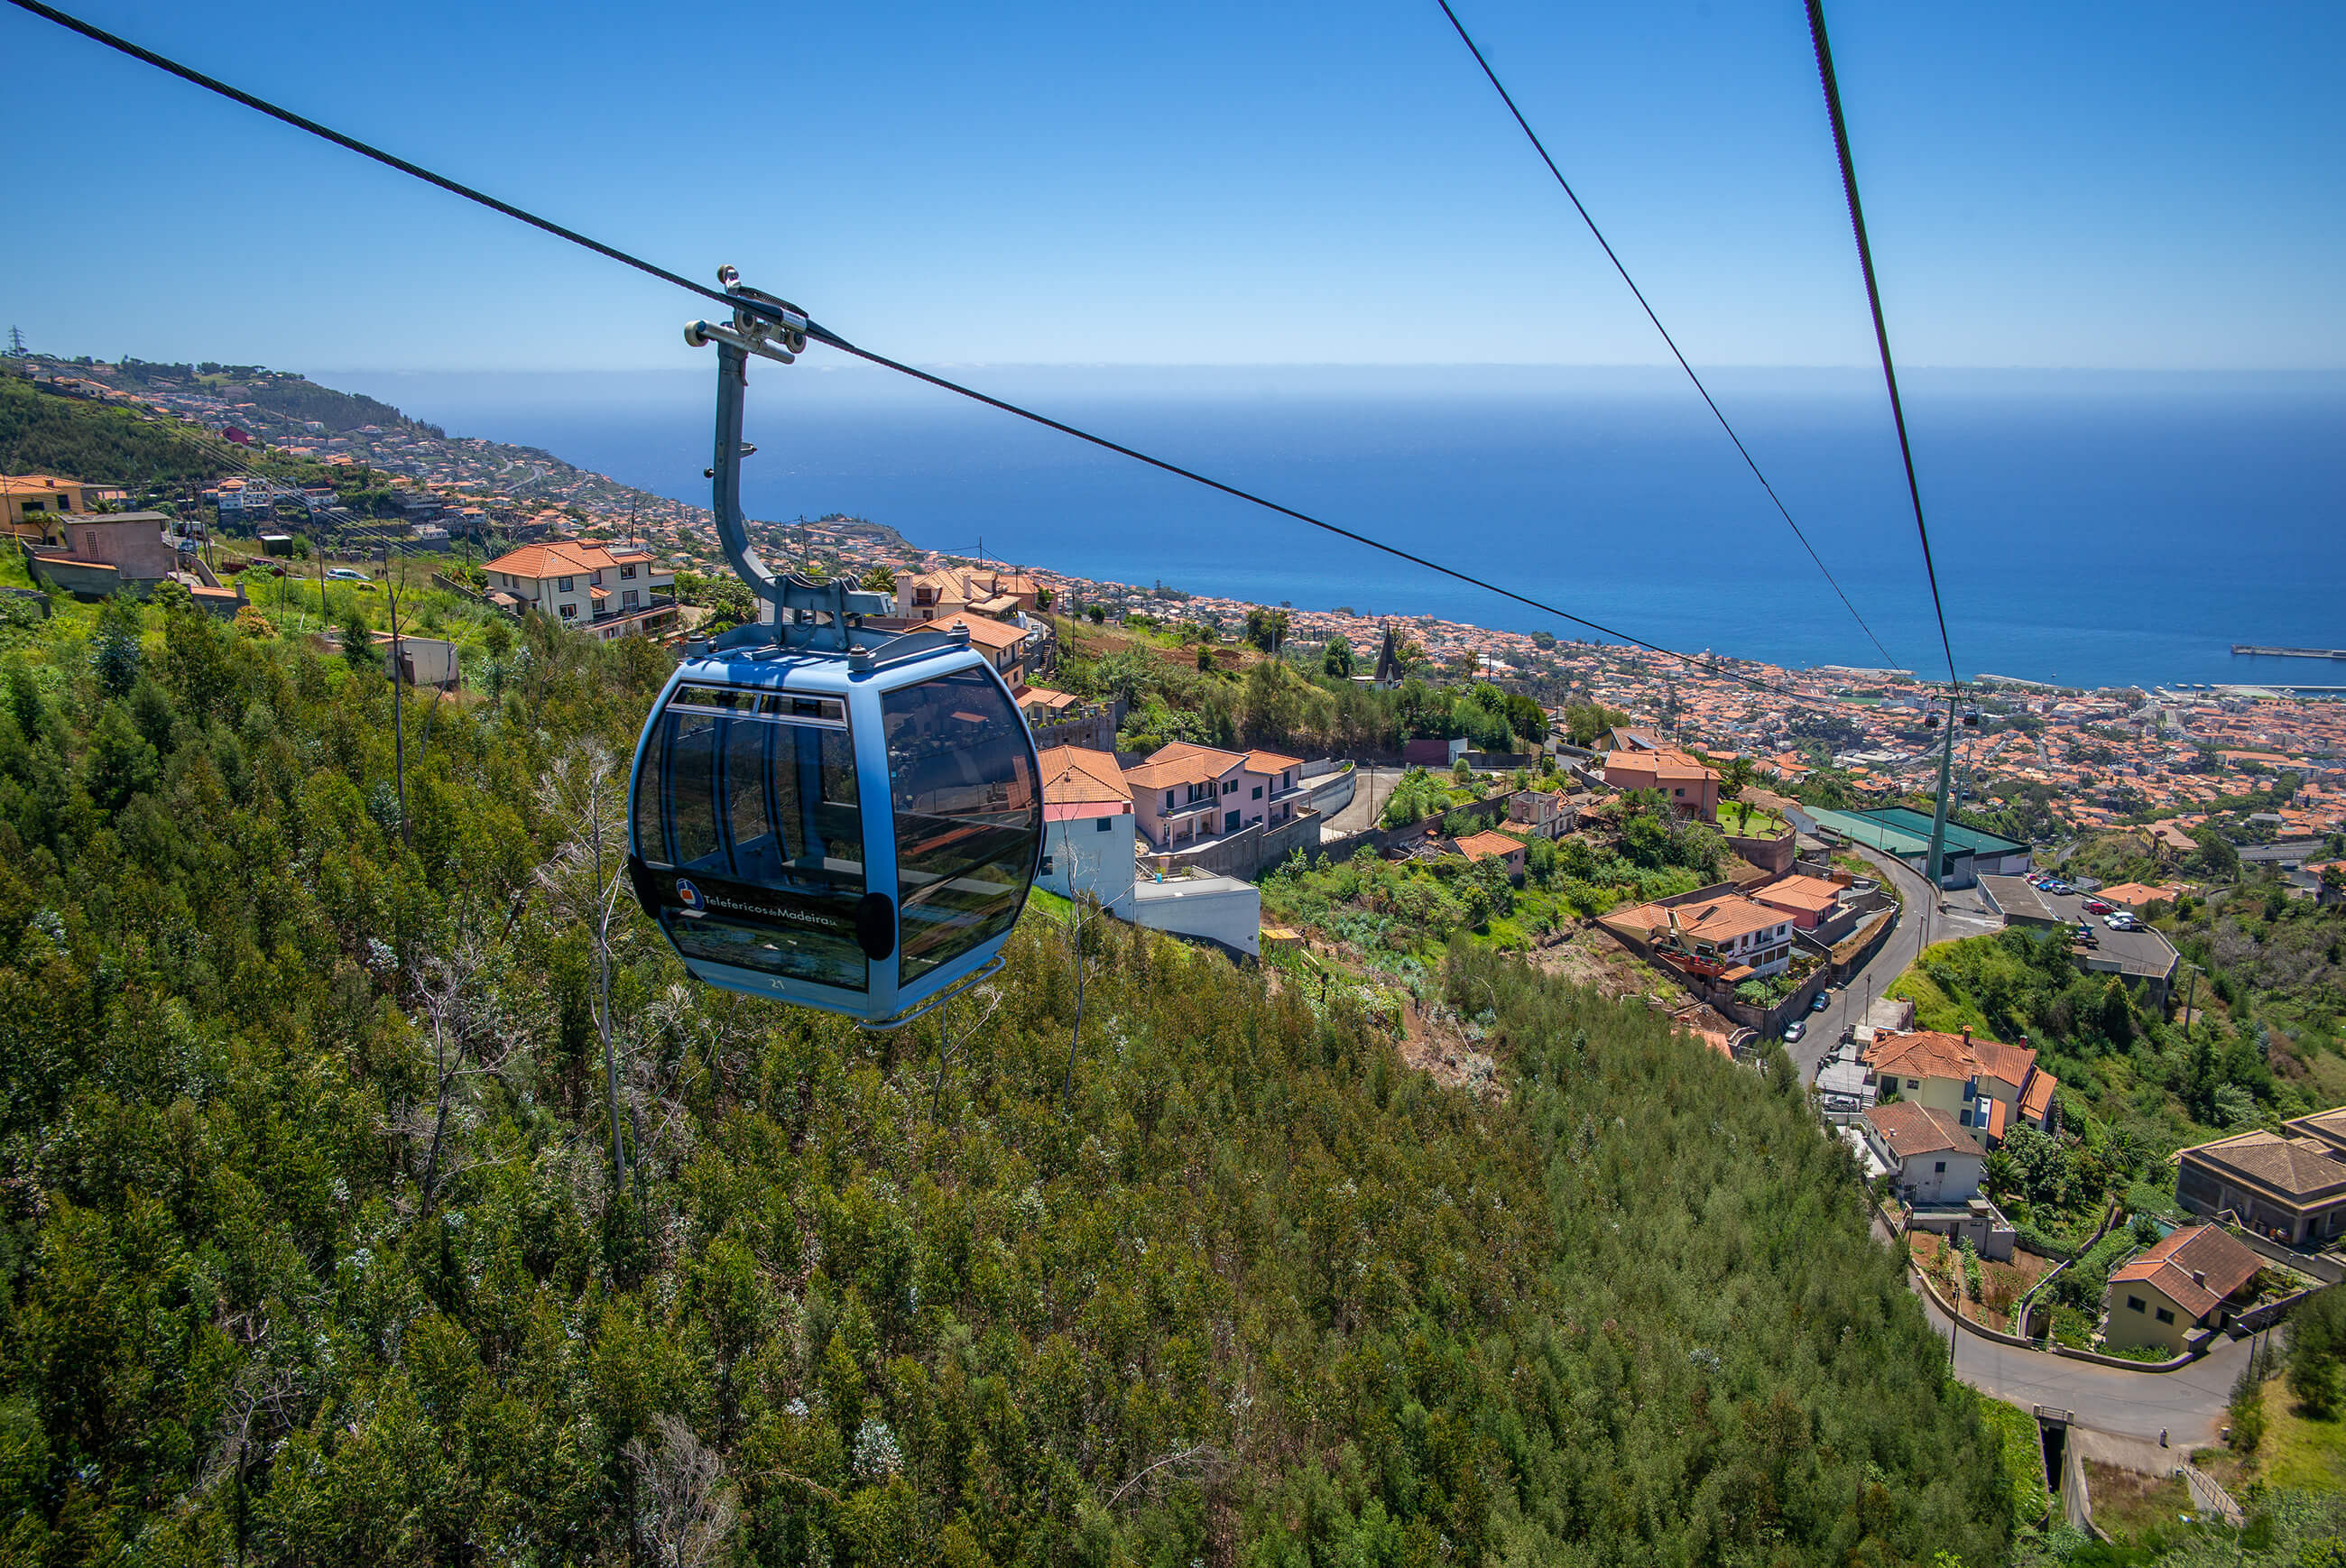 https://bubo.sk/uploads/galleries/5052/lubos_fellner_portugalsko_madeira_l1000328.jpg